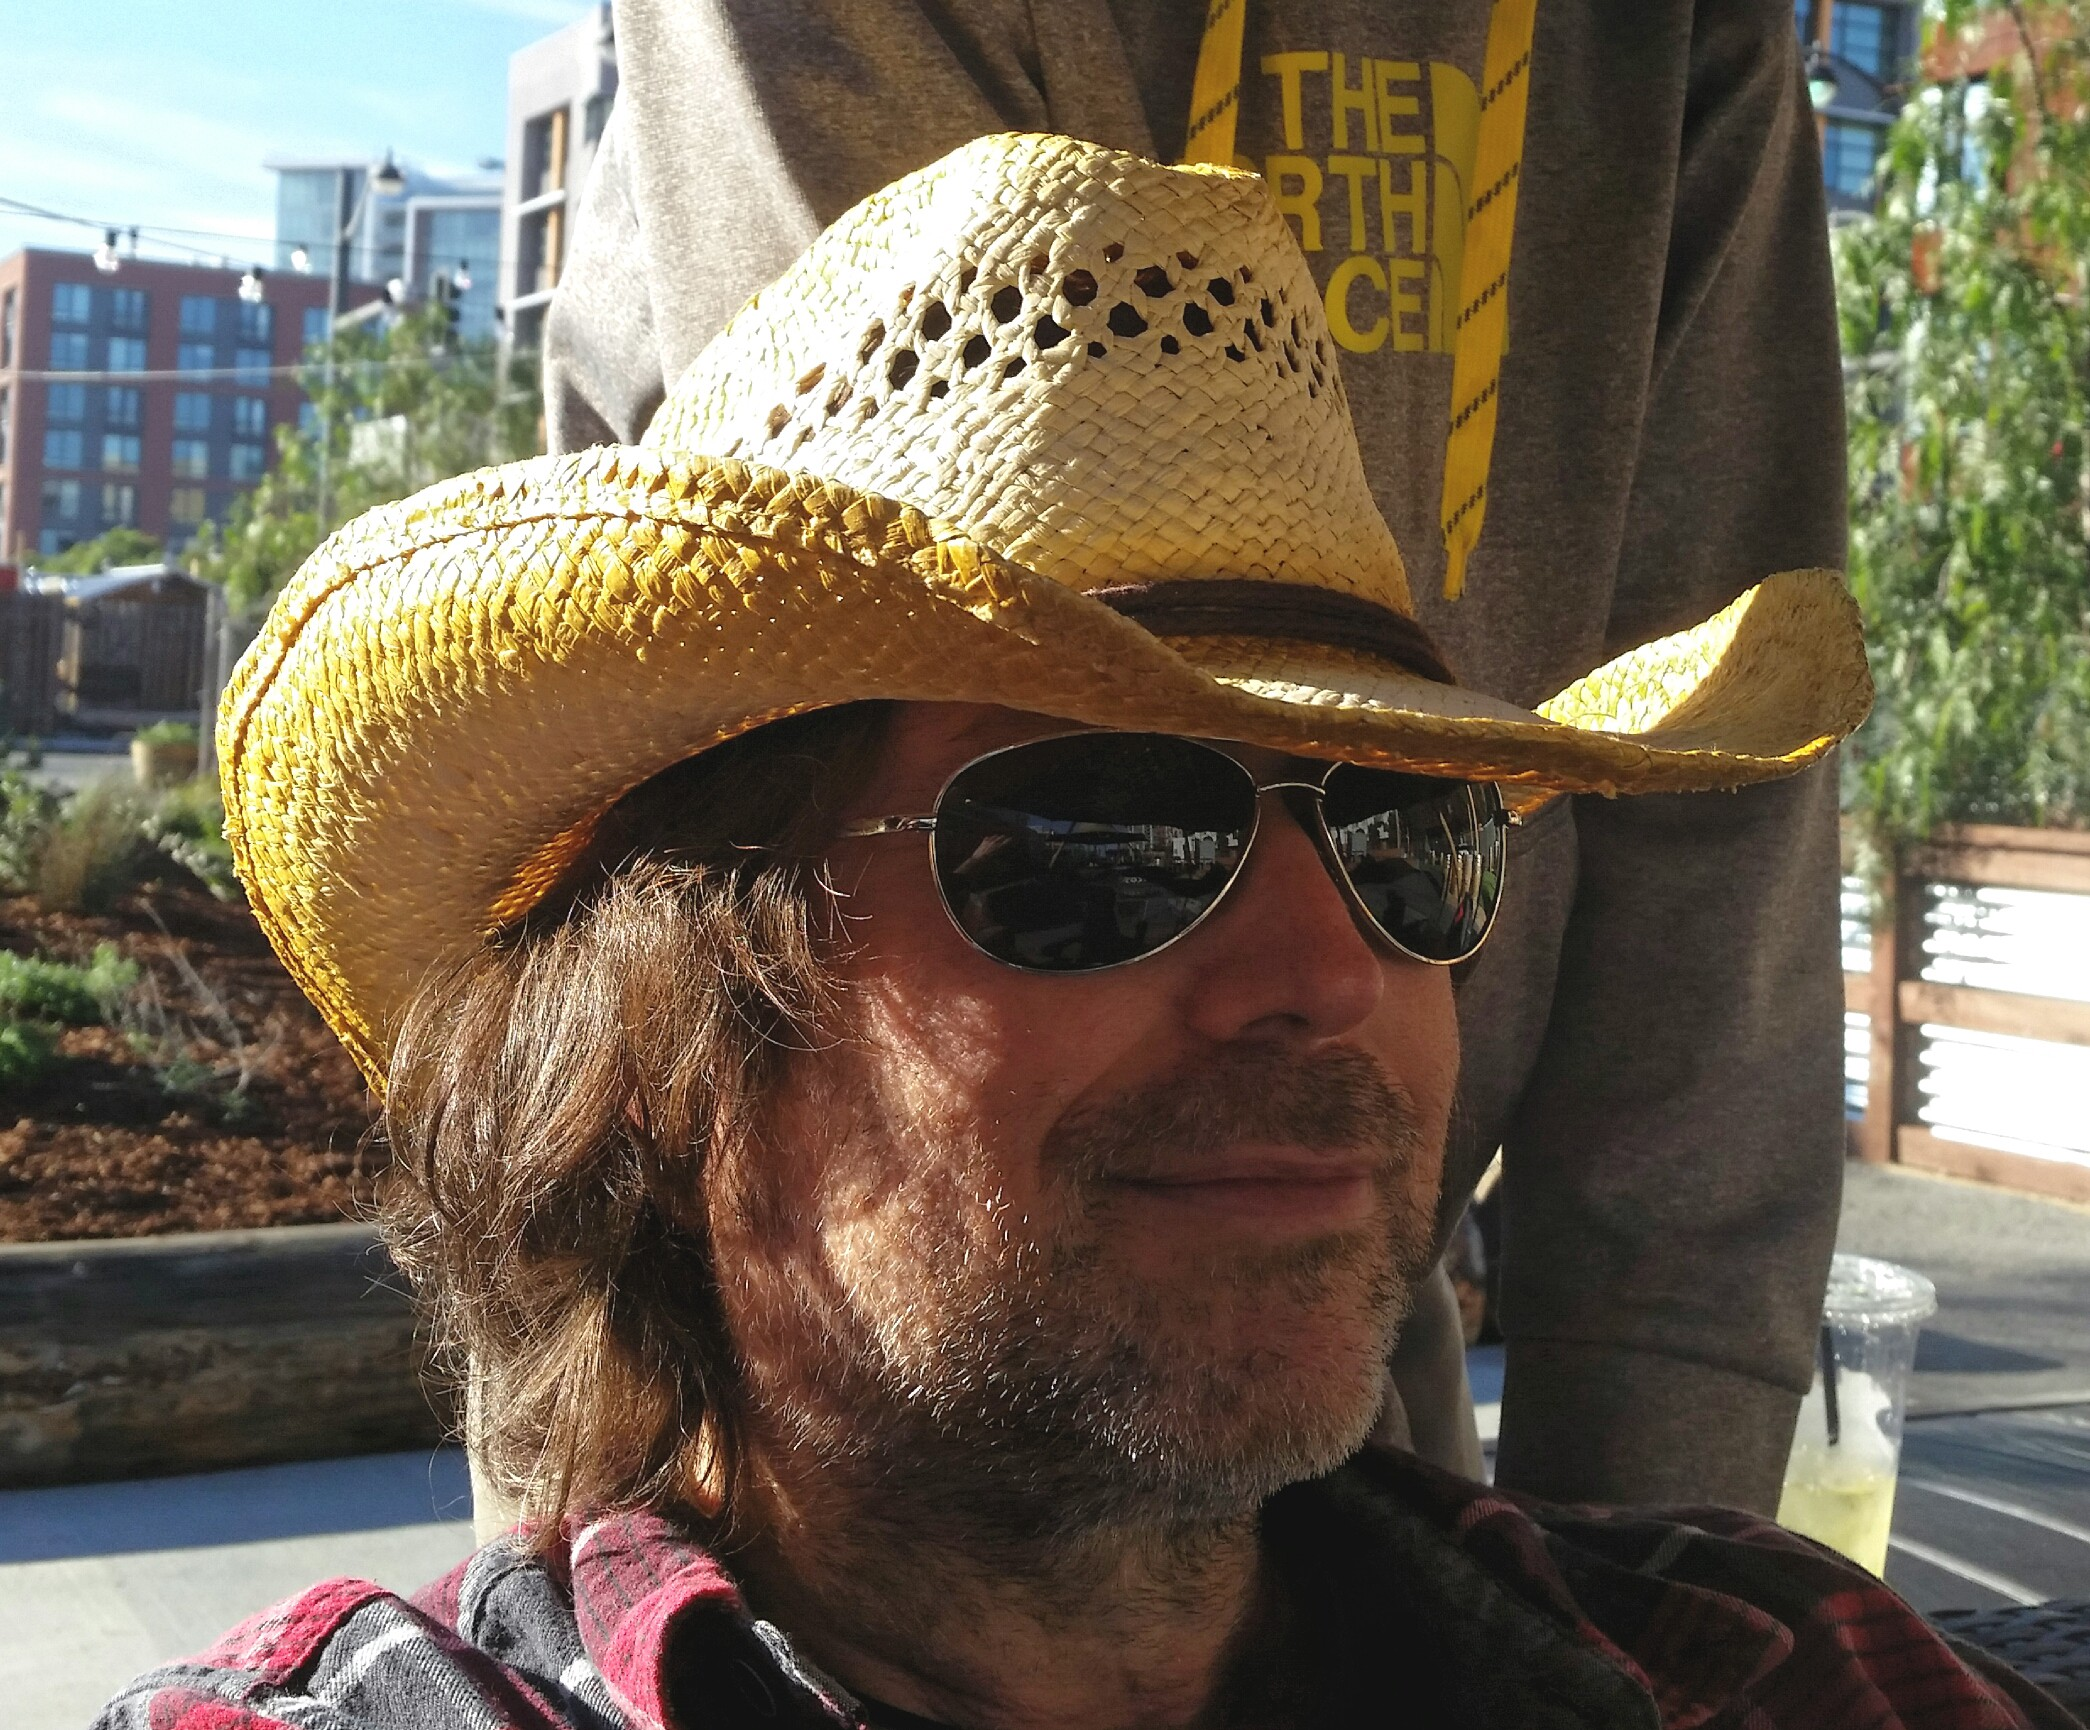 Man wearing a cowboy hat and sunglasses.